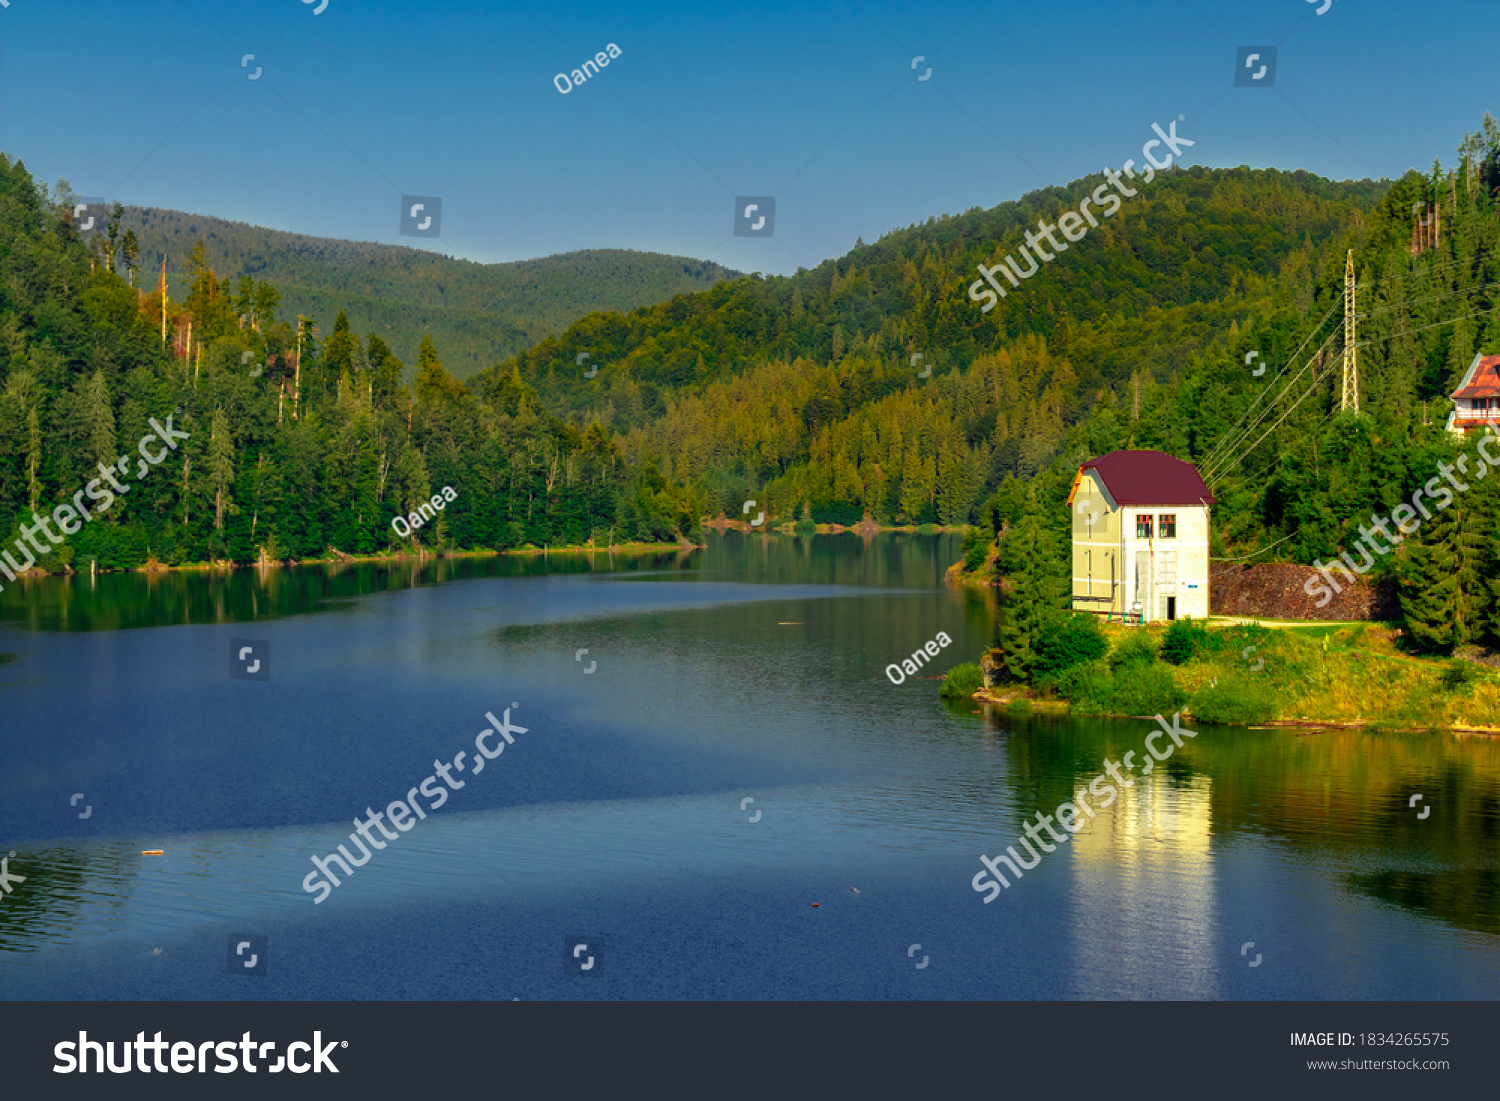 A house by the lake in the mountains